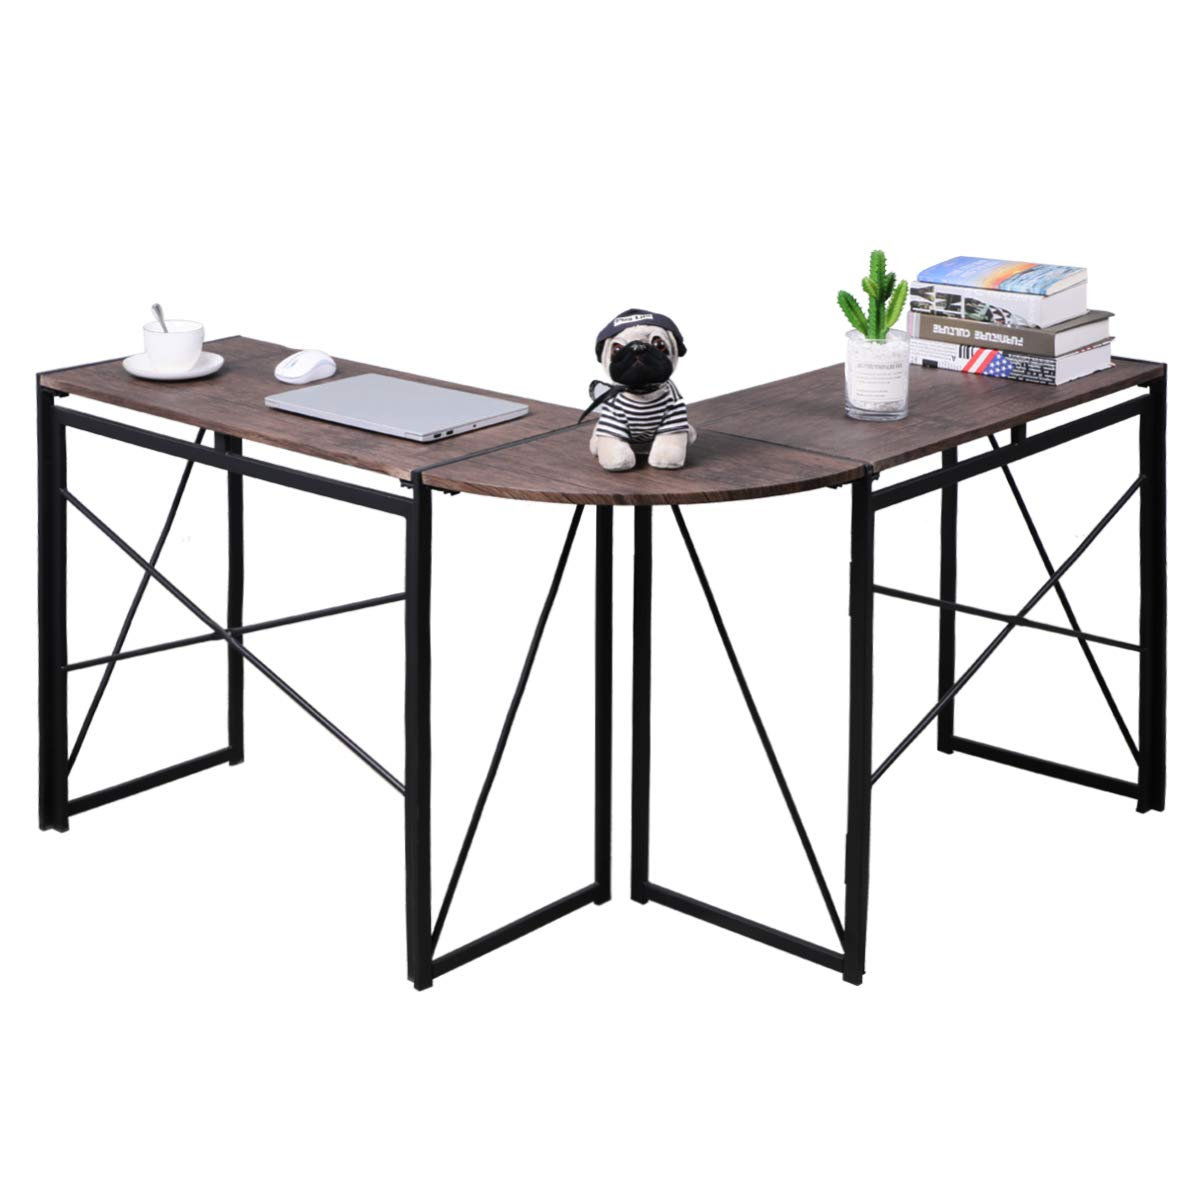 No-Assembly Folding L-Shaped Computer-Desk Home Office Workstation Writing Study Corner Desk Laptop Table 47 x 15 x 29.5 Inches, Brown-VC1905 by Coavas